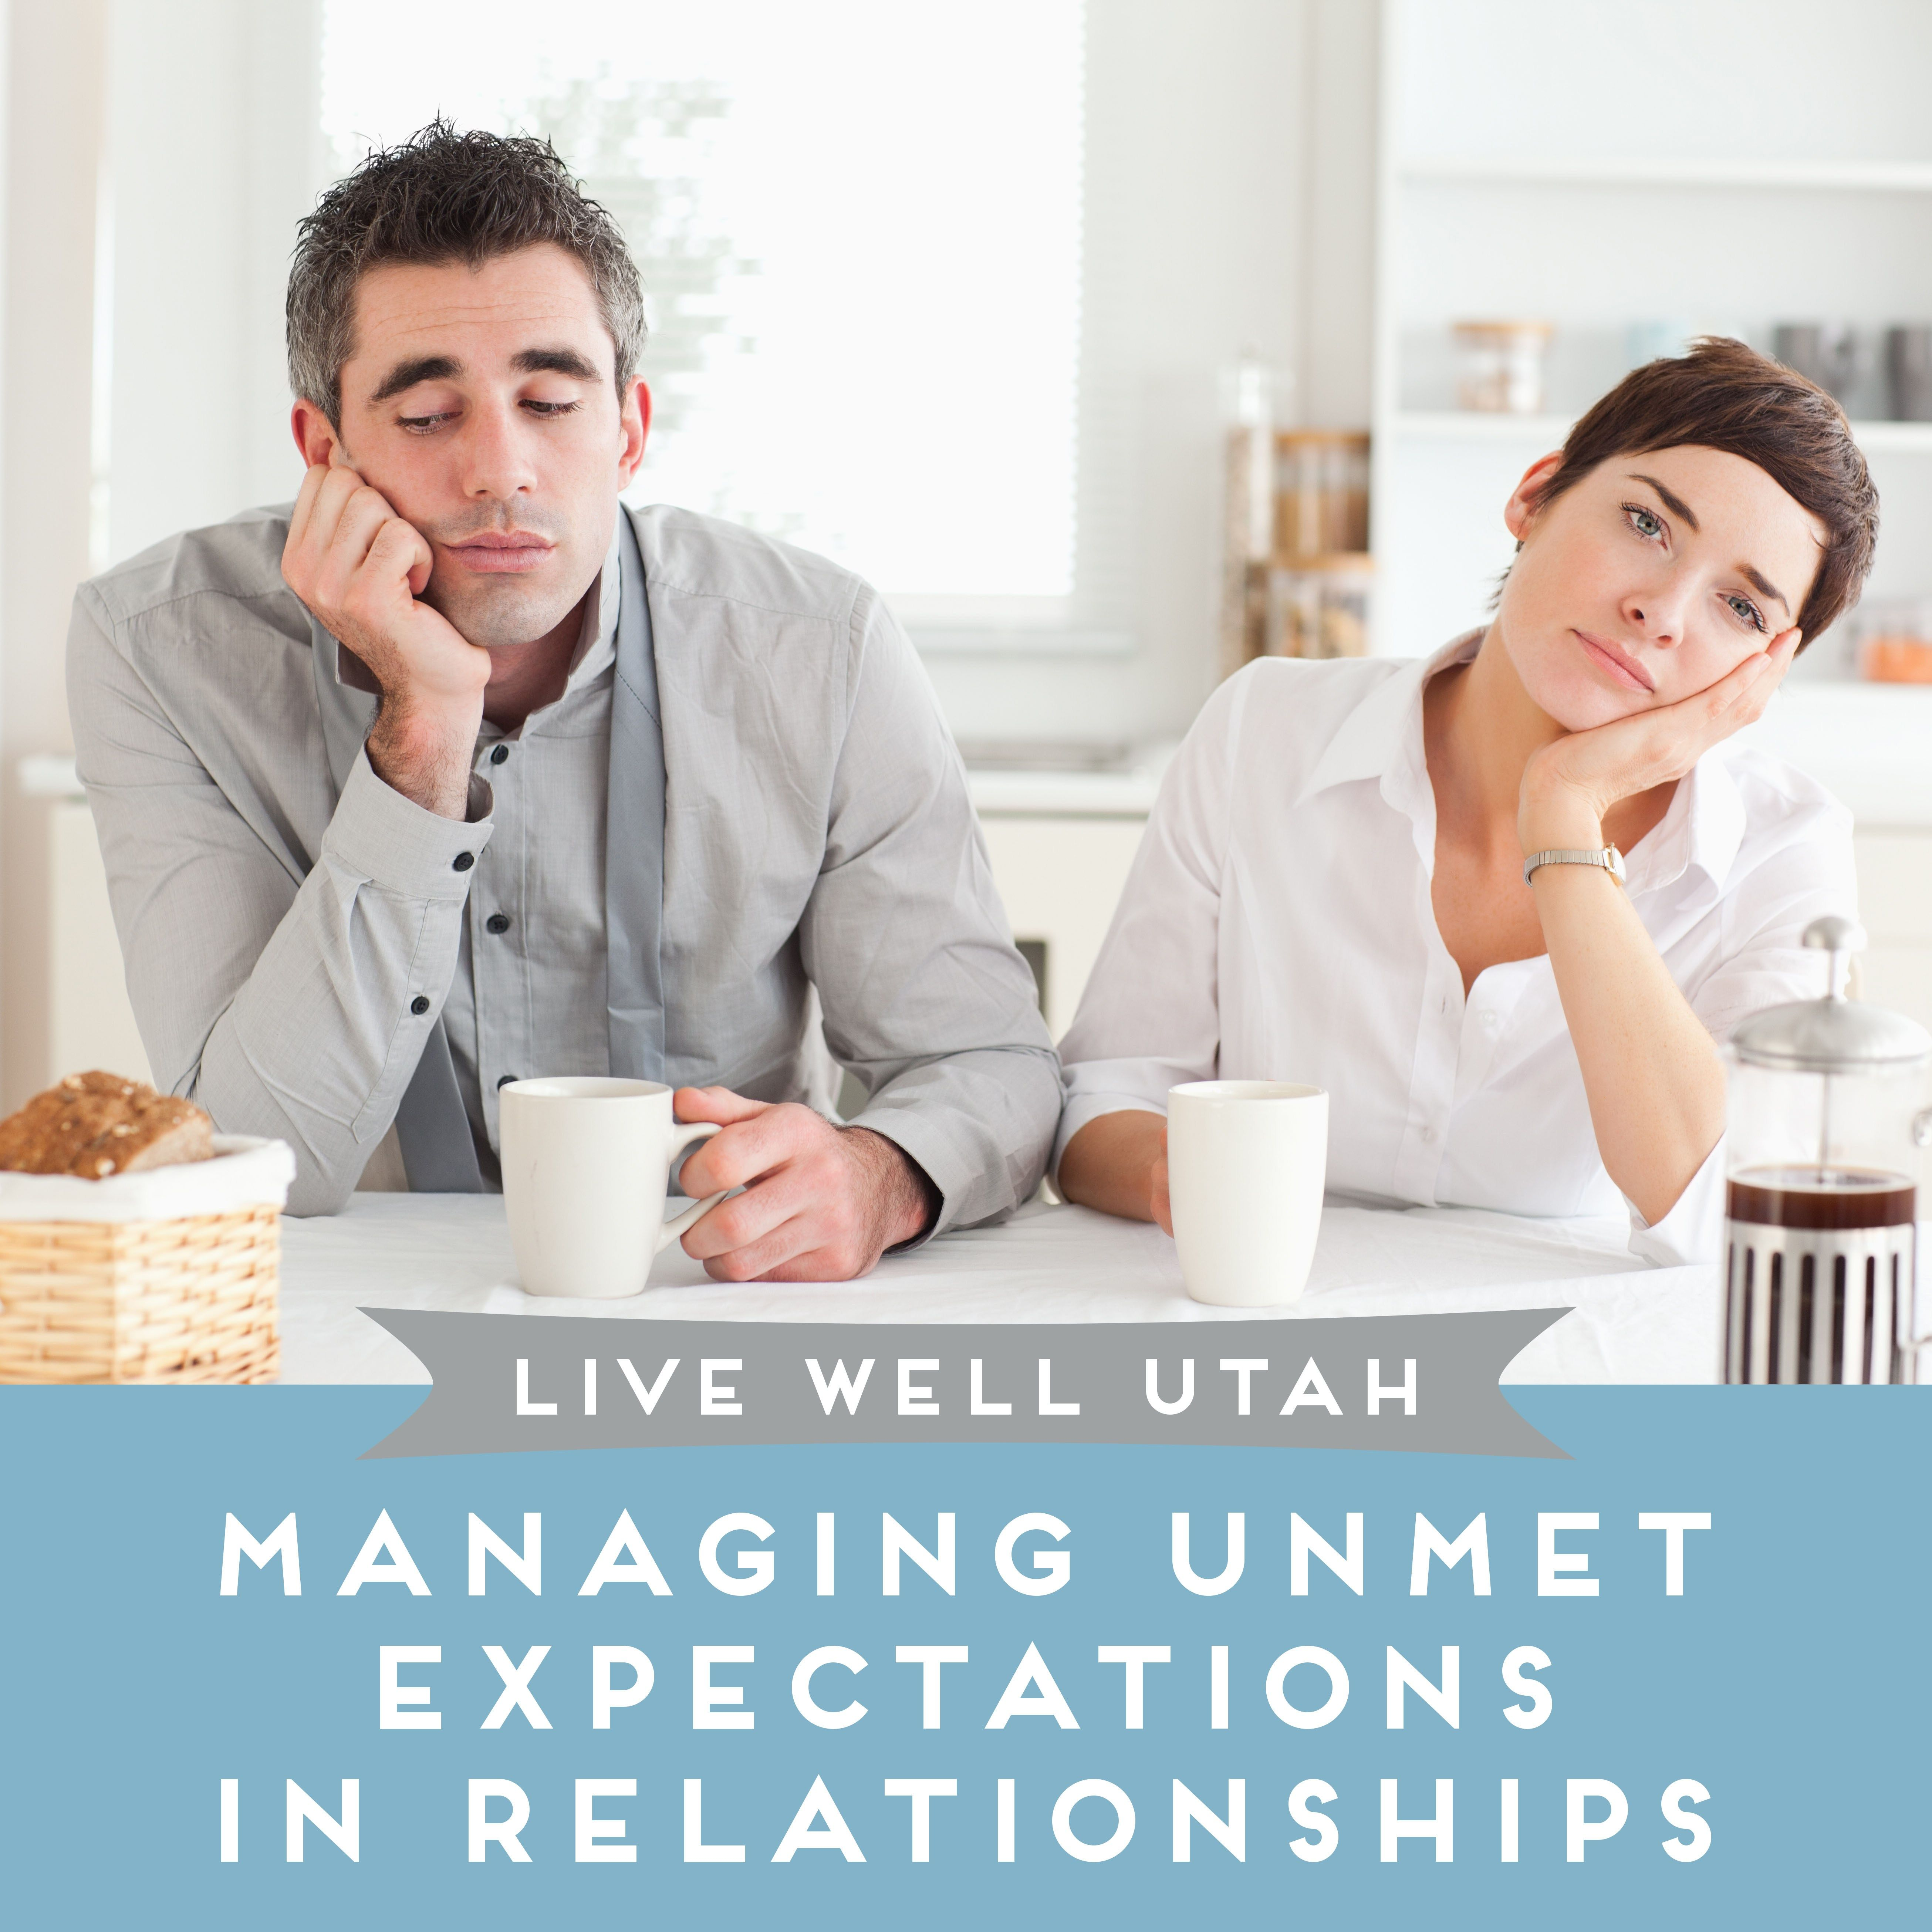 Managing Unmet Expectations In Relationships